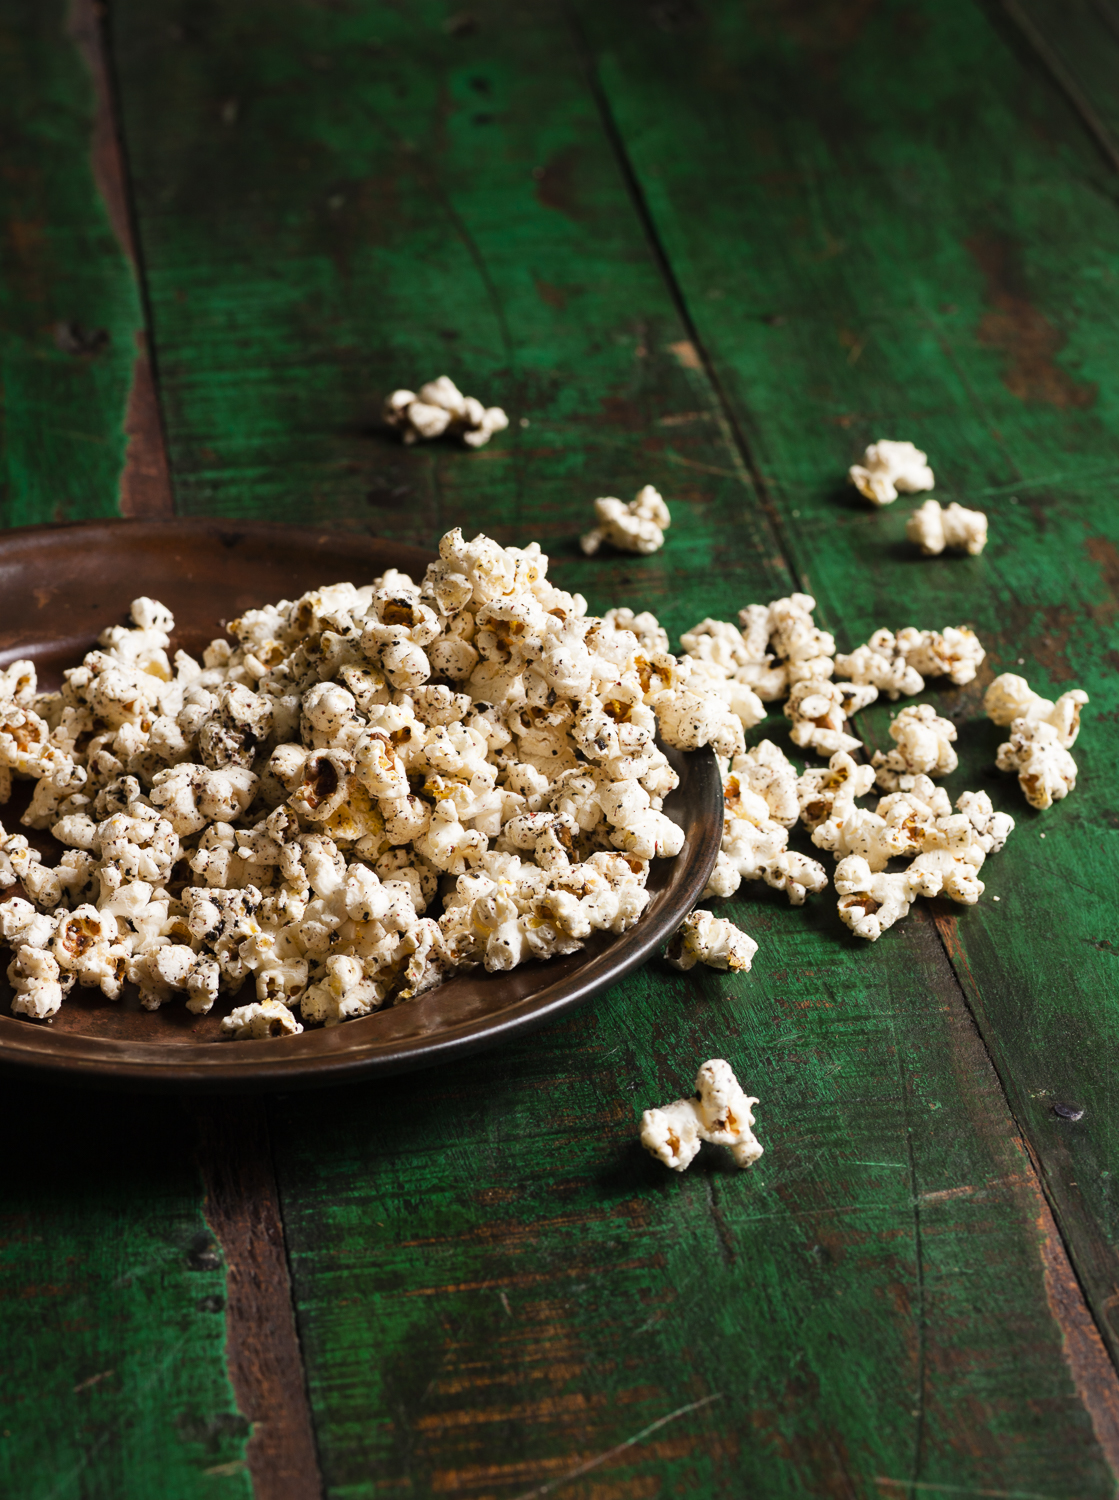 oliver_rowe_sunday_times_food_styling_Popcorn-10.jpg